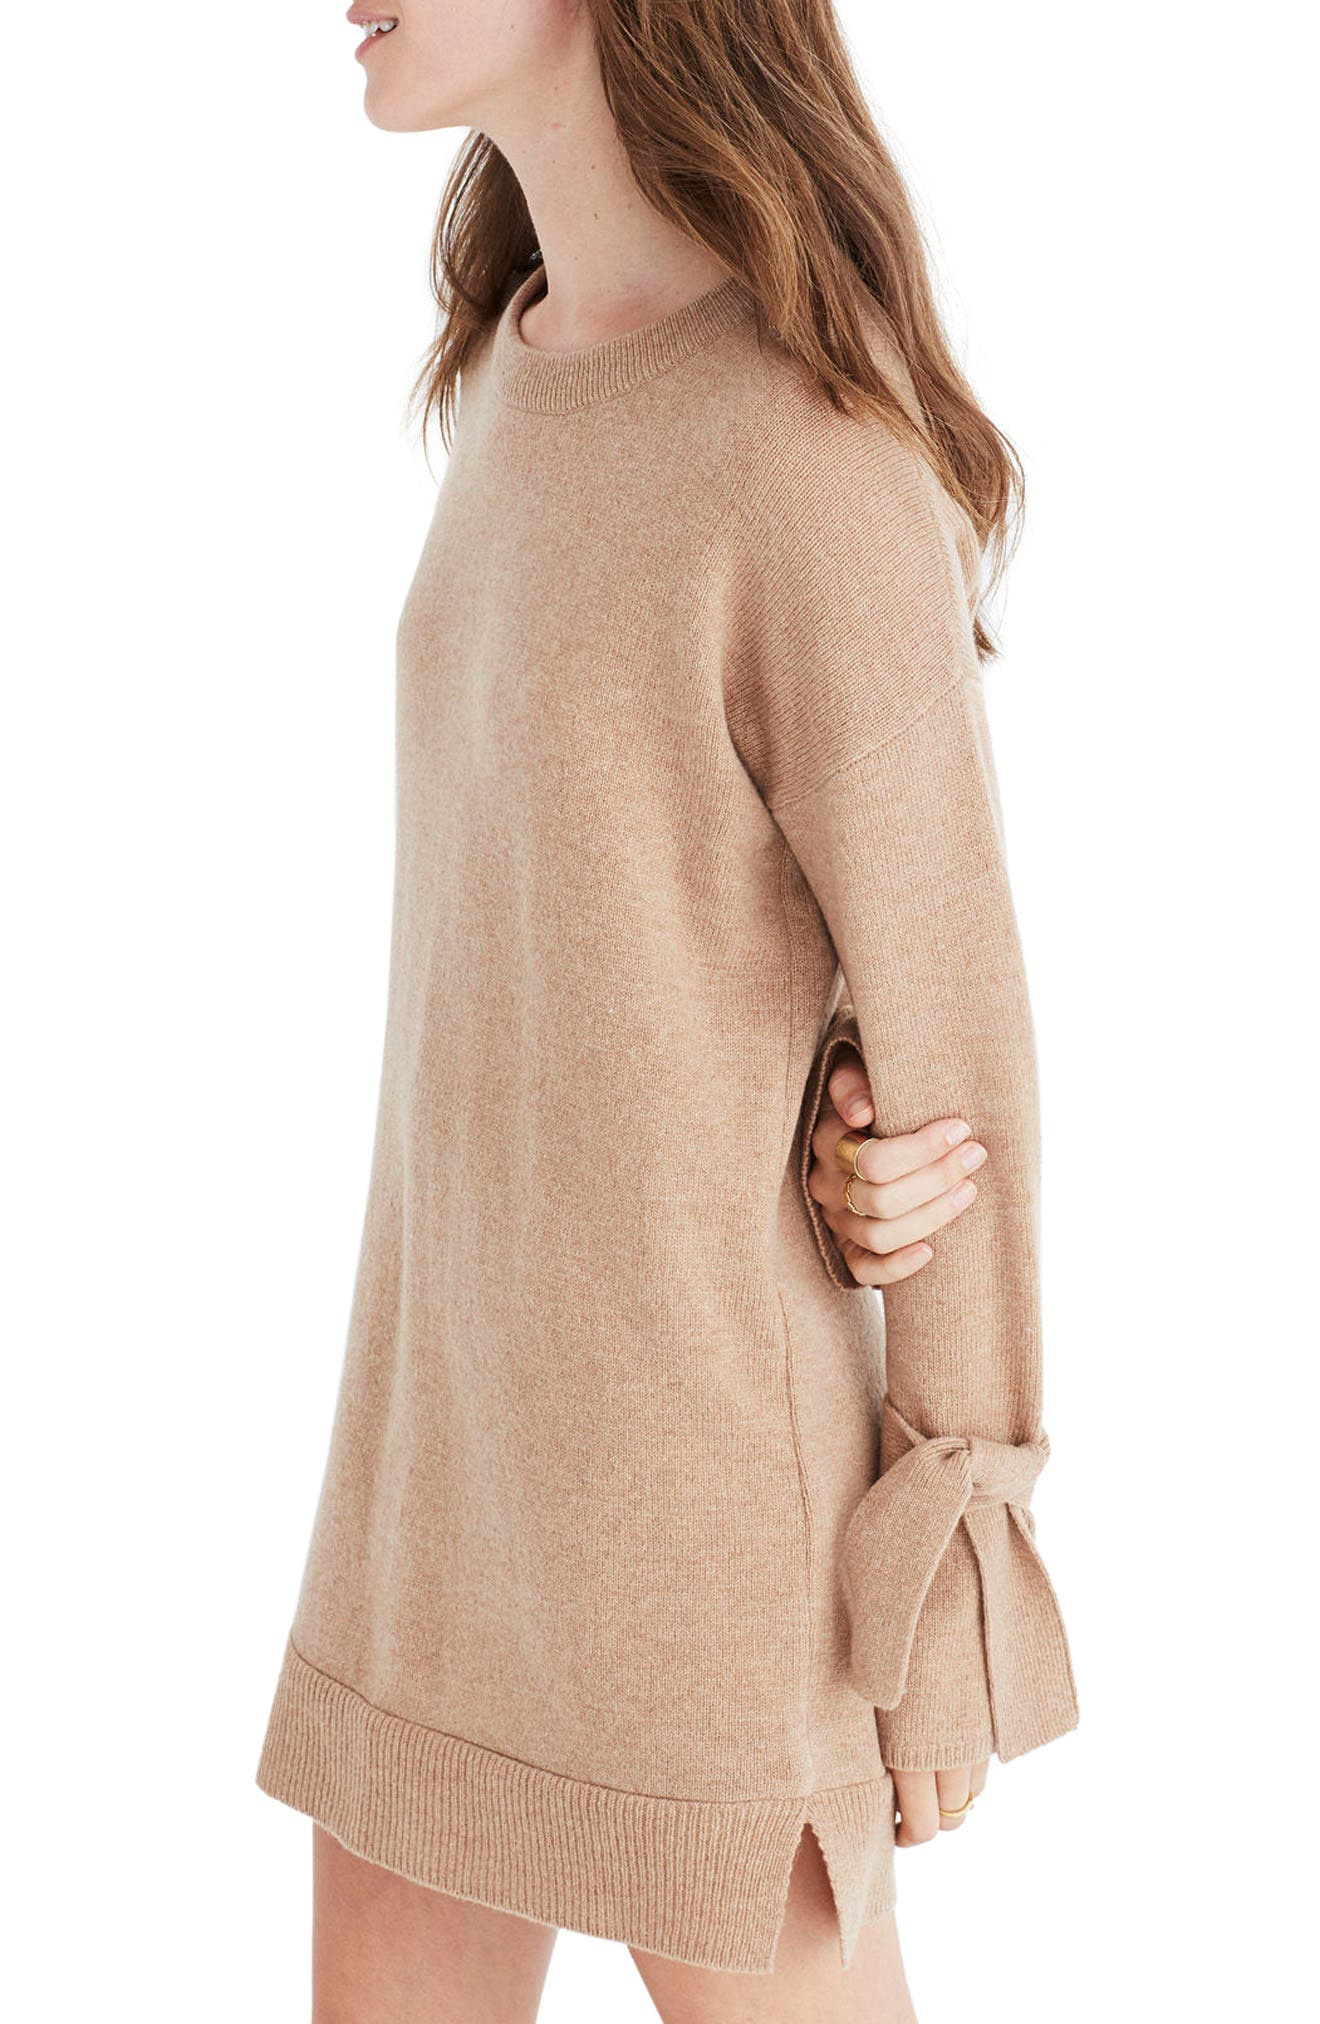 Alternate Image 1 Selected - Madewell Tie Cuff Sweater Dress